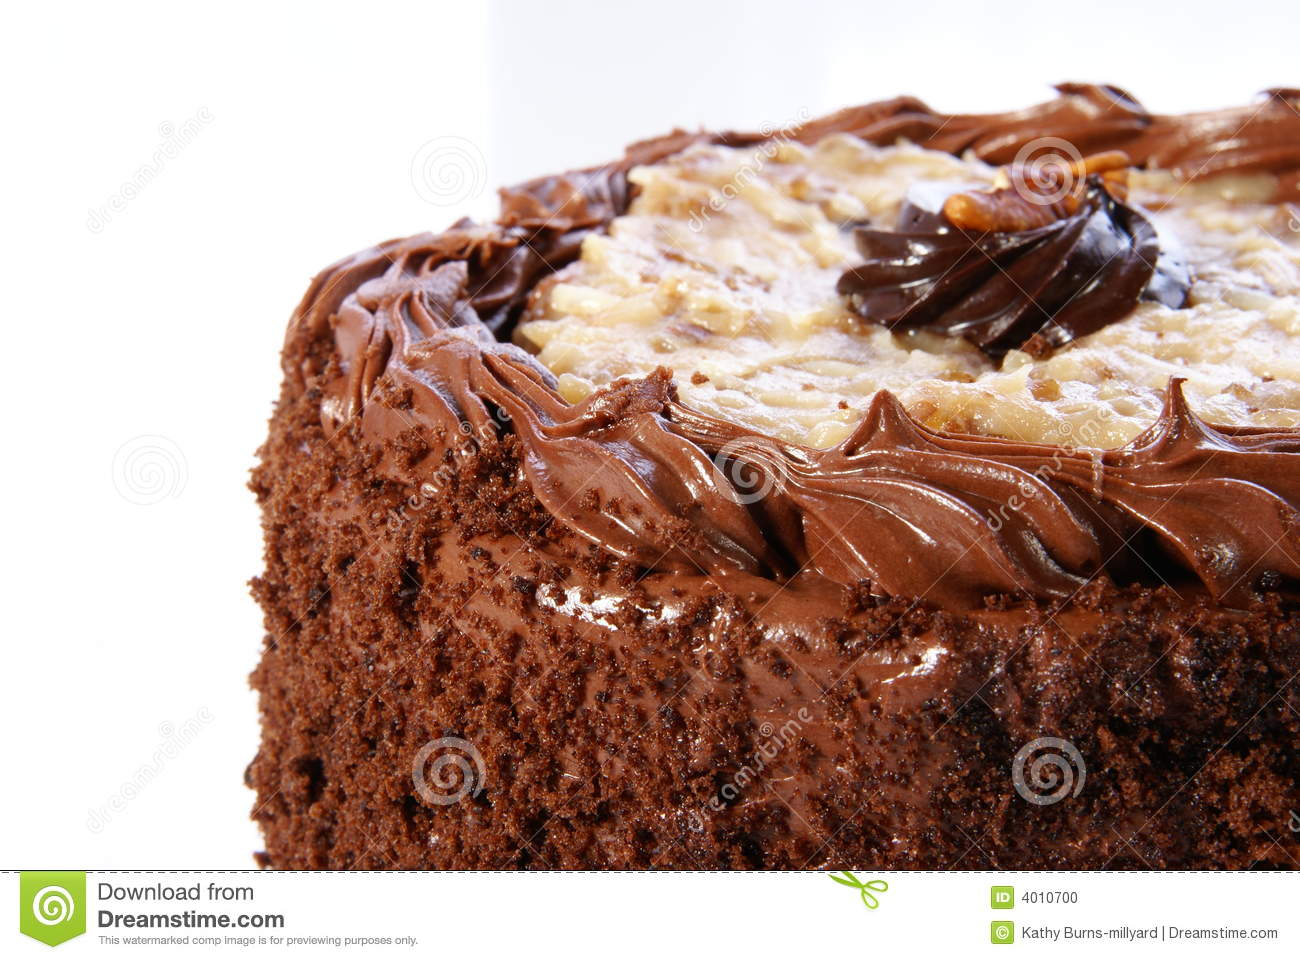 Chocolate Cake Stock Photo - Image: 4010700